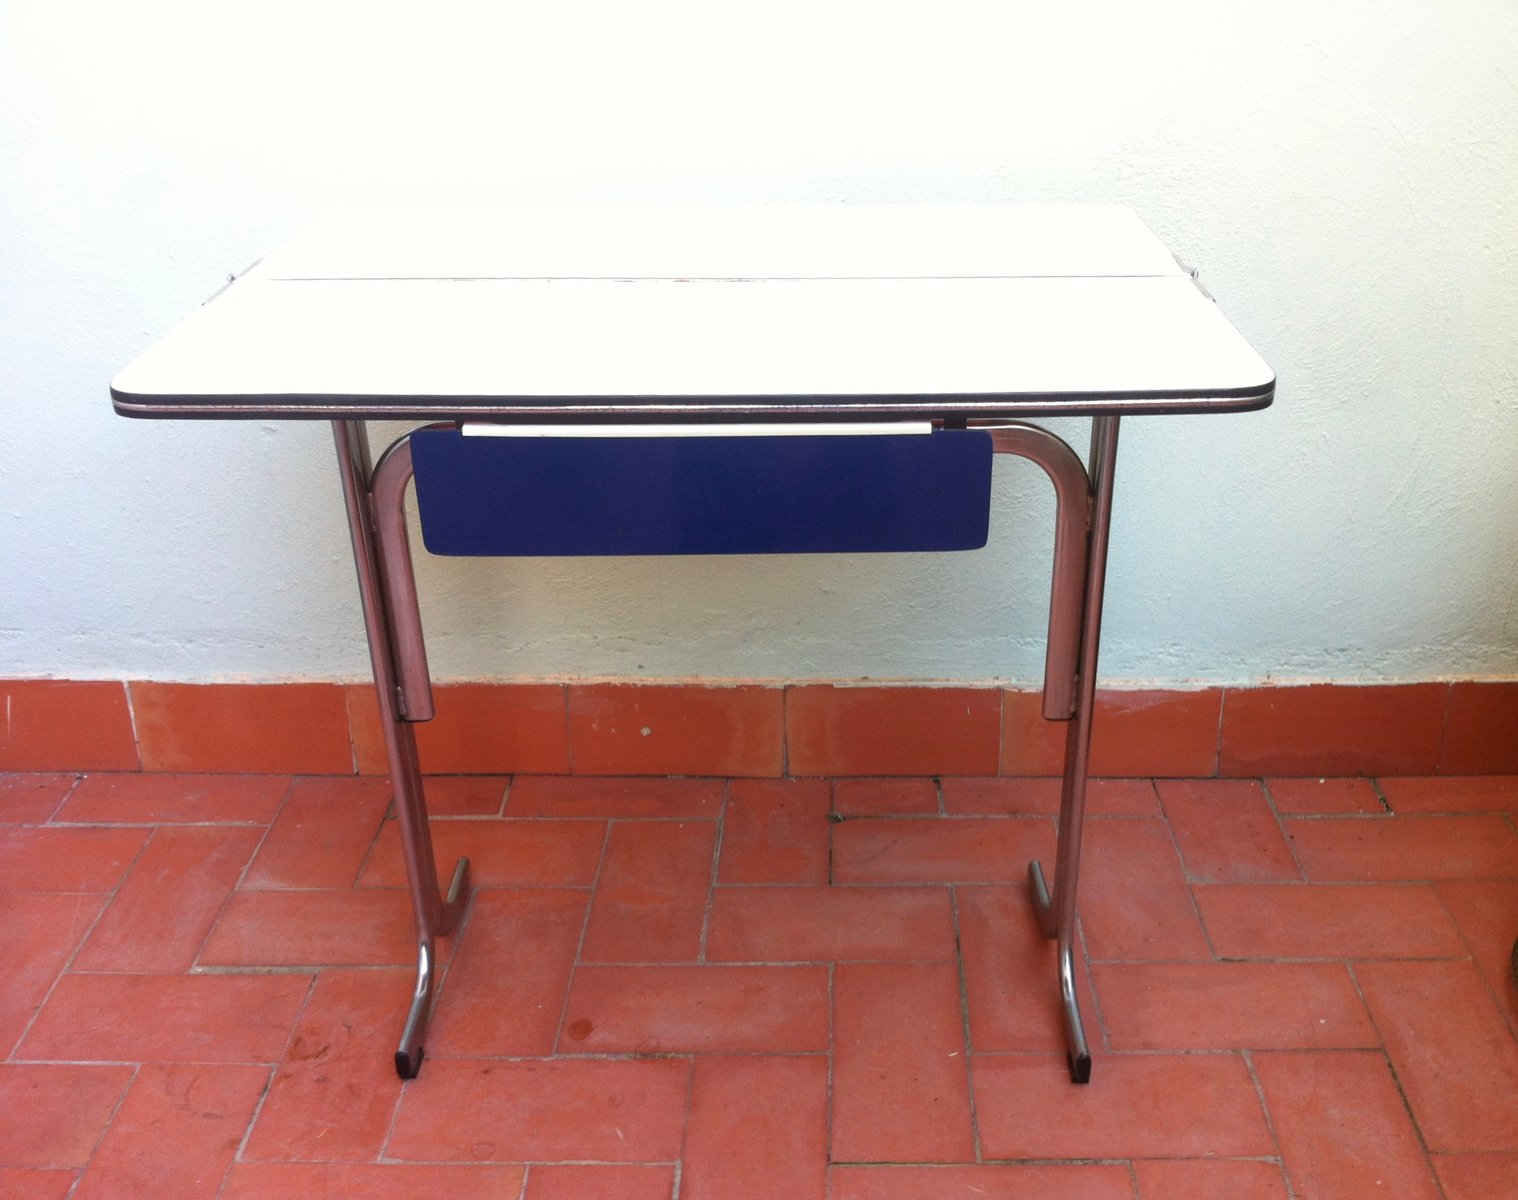 belgian formica folding kitchen table with drawer 1960s belgian formica folding kitchen table with drawer 1960s for sale      rh   pamono eu